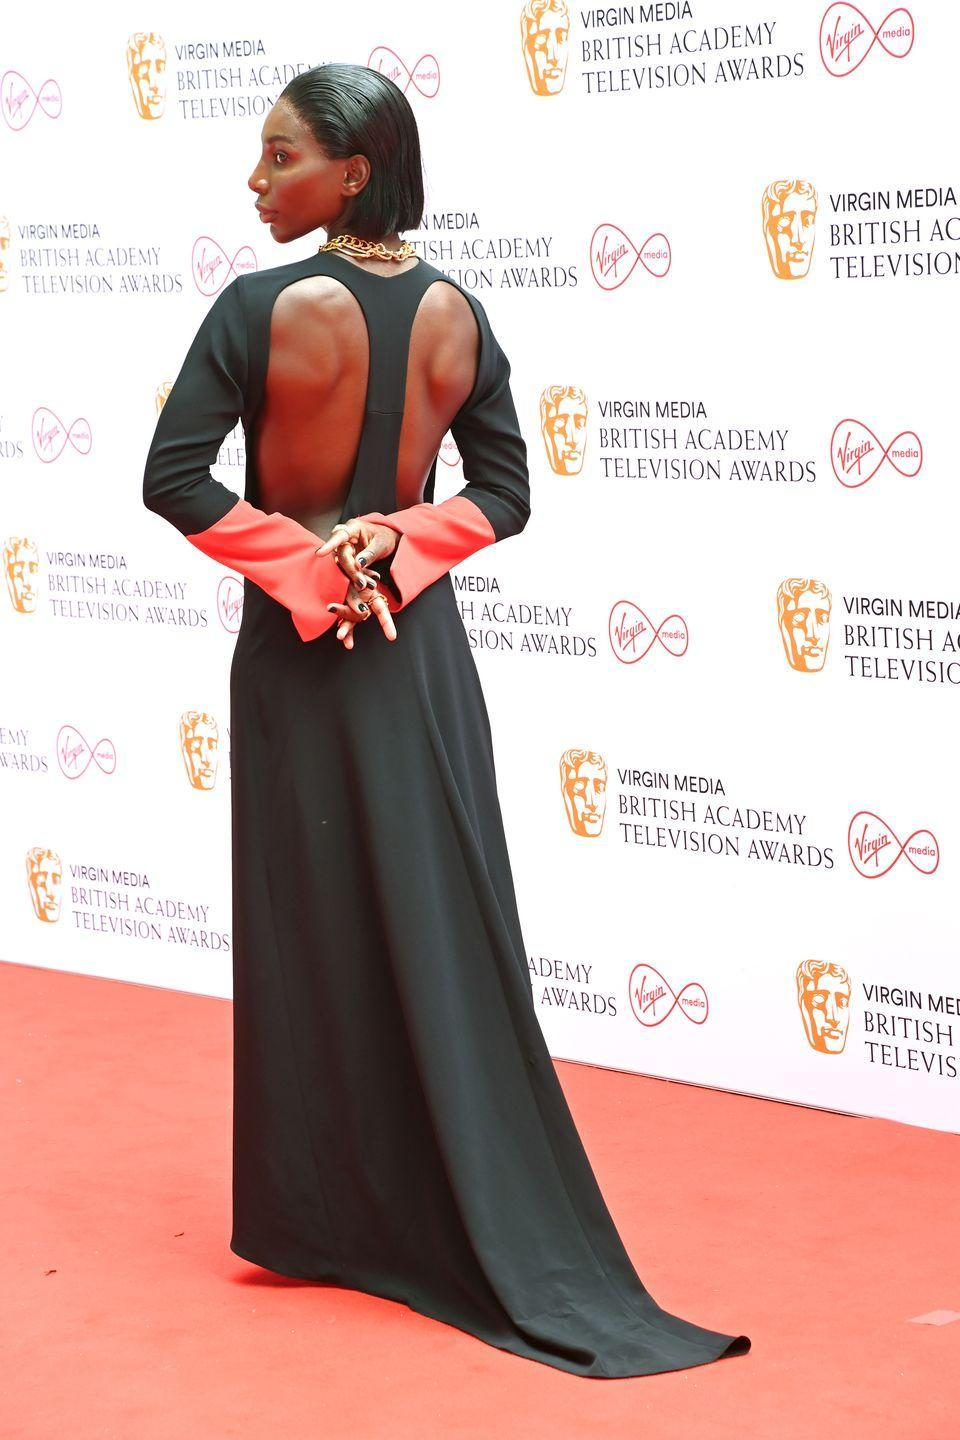 <p>Michaela Coel won big at the awards ceremony, and also wore one of her best red-carpet looks to date, choosing some of the most exciting newgen designers for the big moment. The star shone in a black gown with red sleeves and striking backless detail, which was designed by Maximilian Davis, and accessorised with chunky gold jewellery by Alighieri.</p>